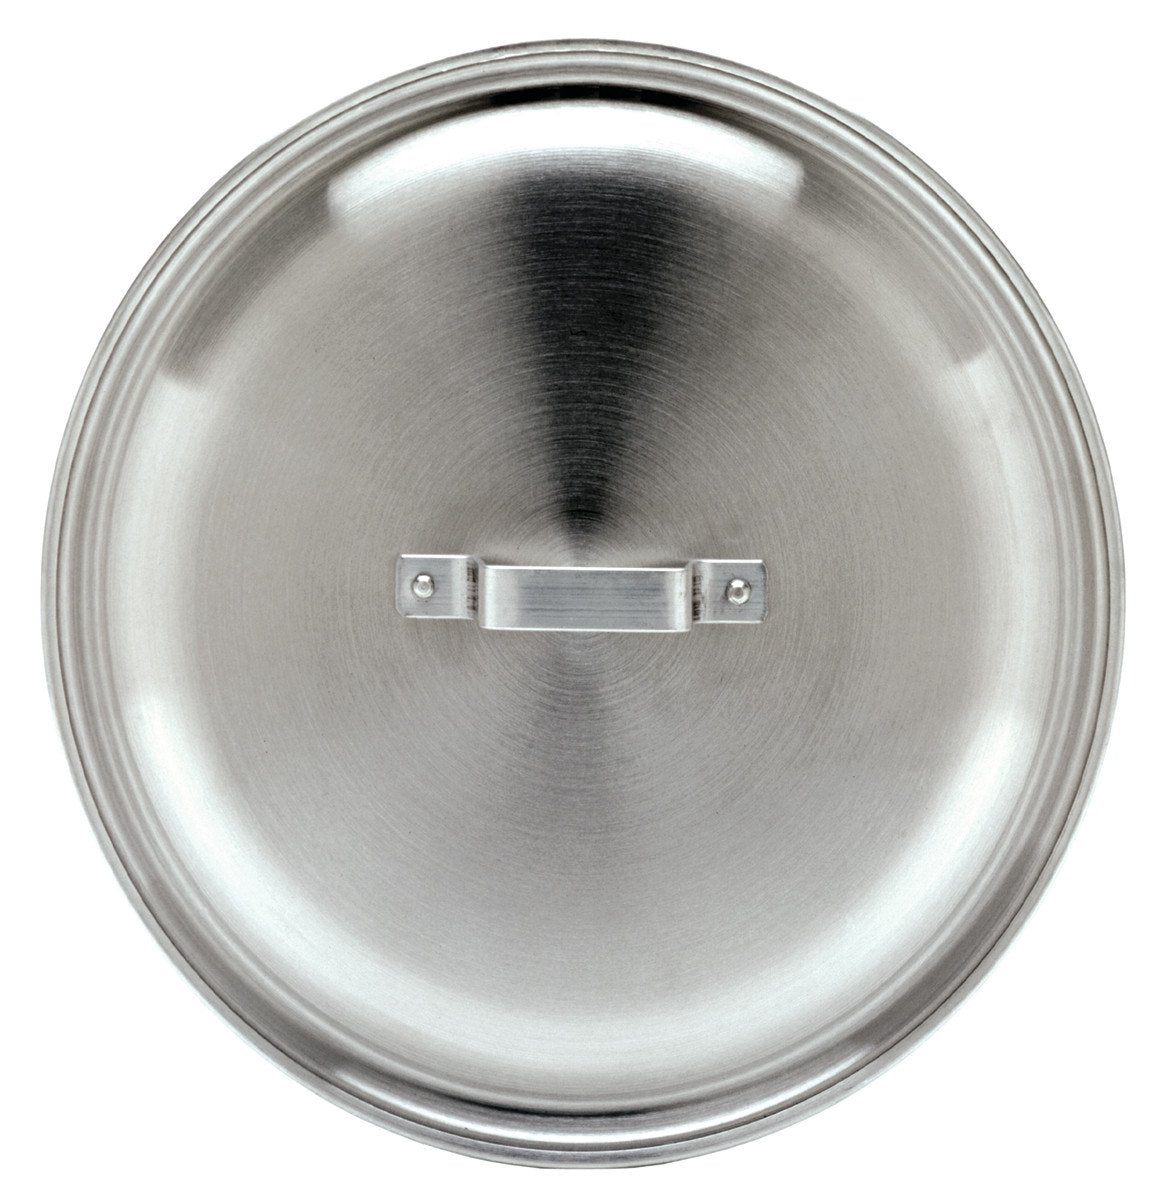 Bayou Classic Aluminum Lid For 15 Gallon Jambalaya Pot from Bayou Classic